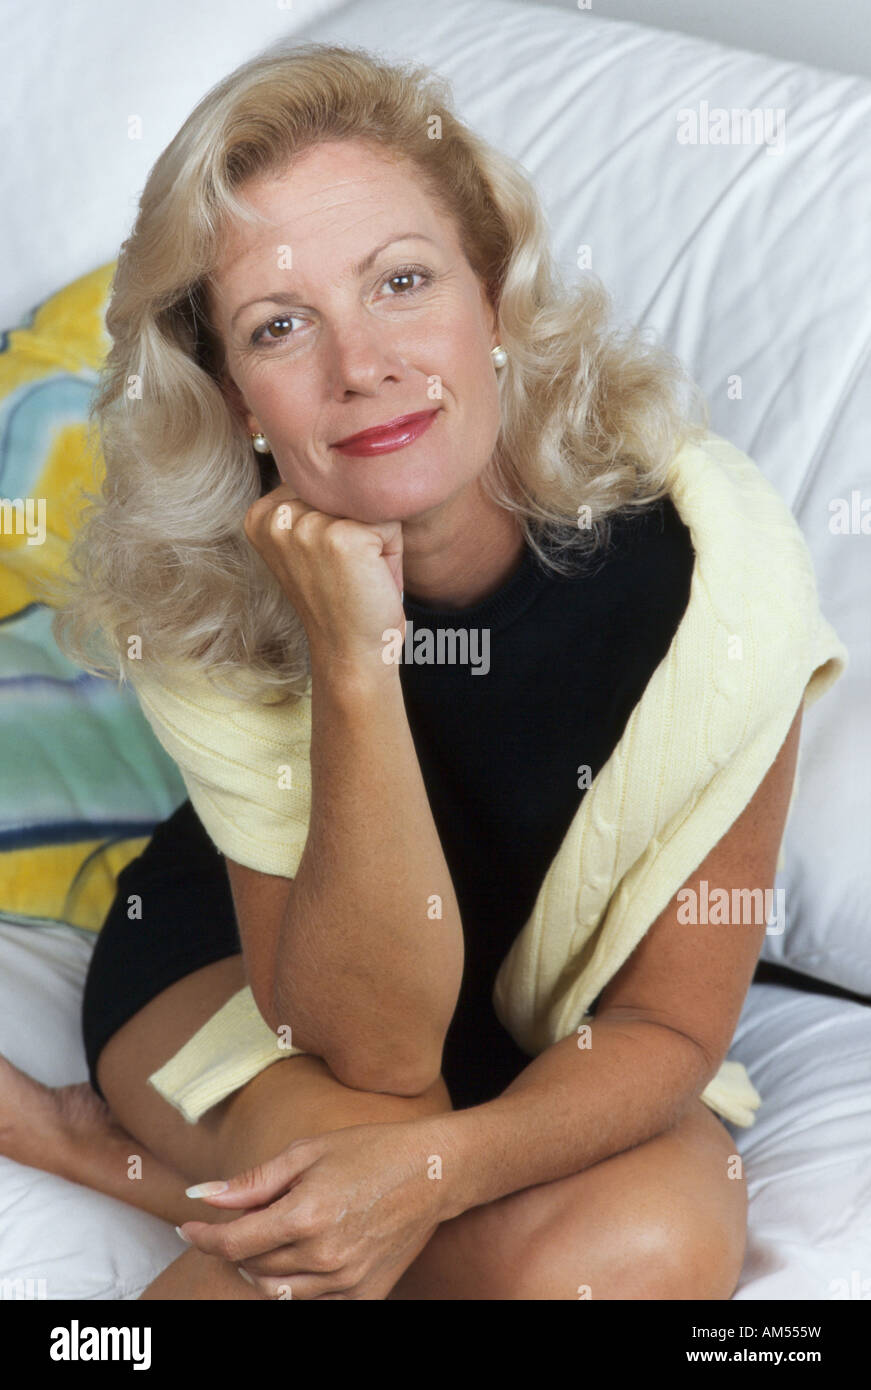 Mature woman, sitting on couch,portrait, Miami - Stock Image